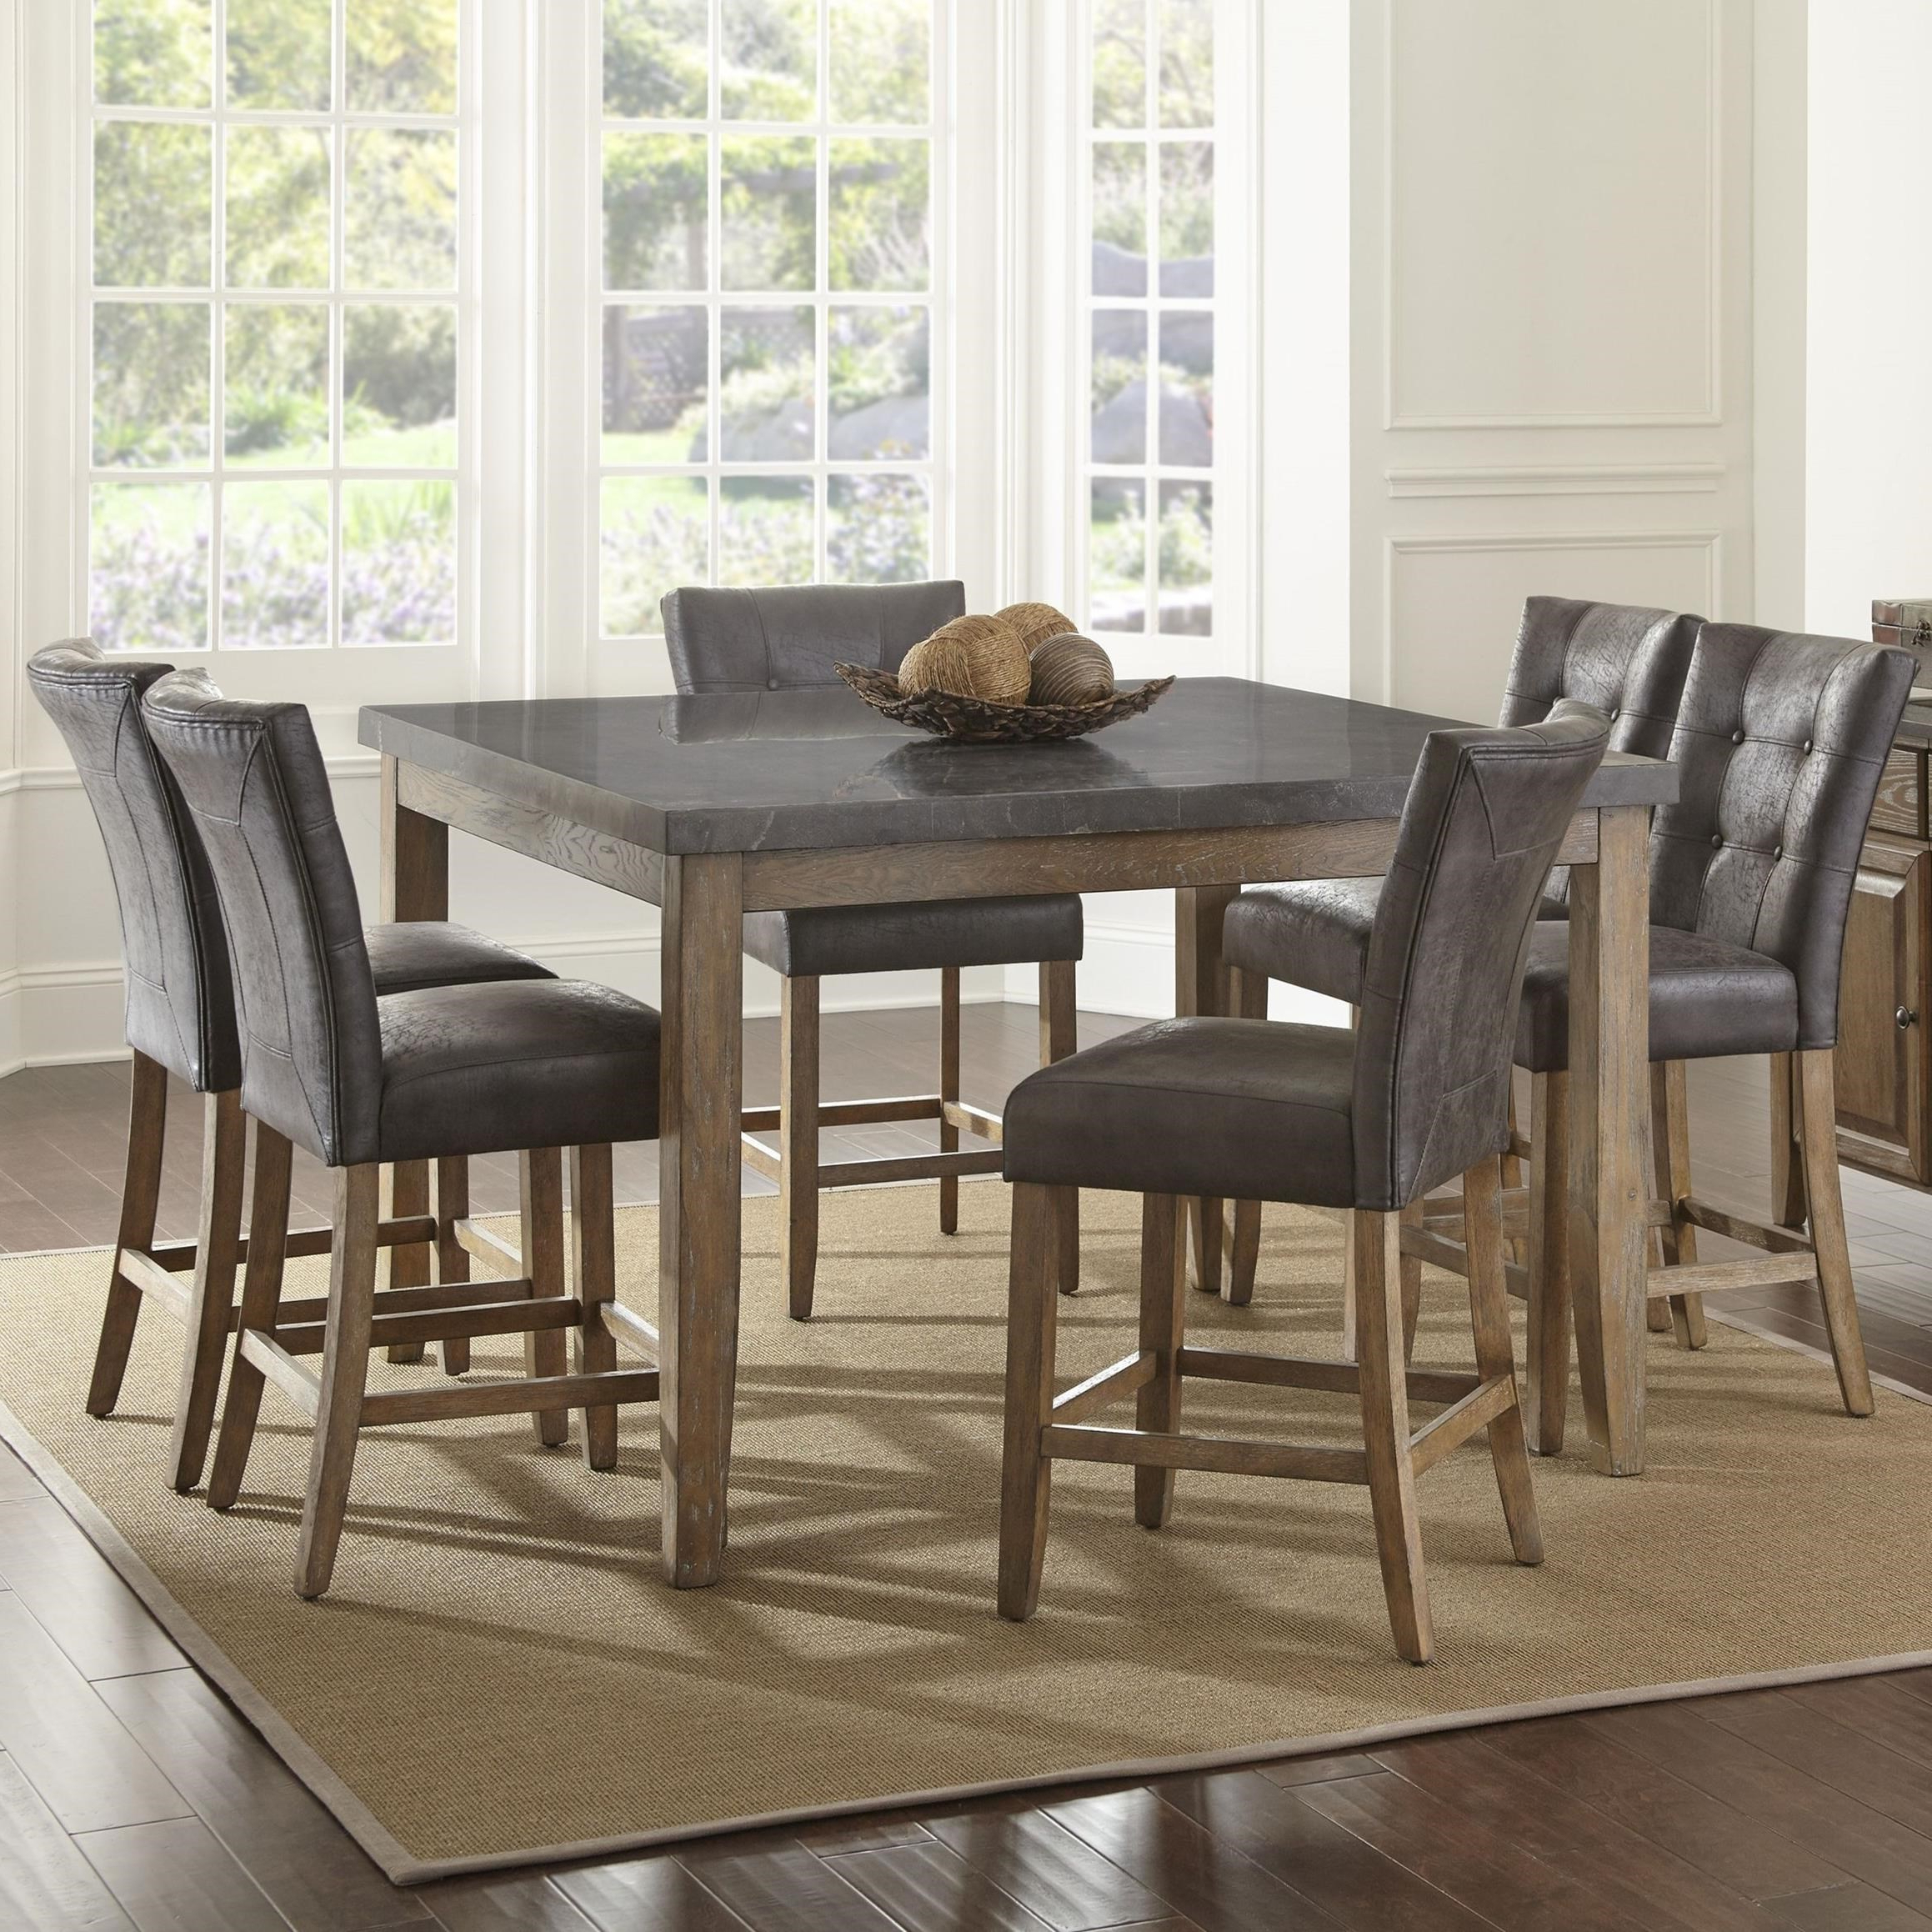 Famous Transitional Driftwood Casual Dining Tables Regarding Steve Silver Debby 7 Piece Transitional Square Table And (View 20 of 25)